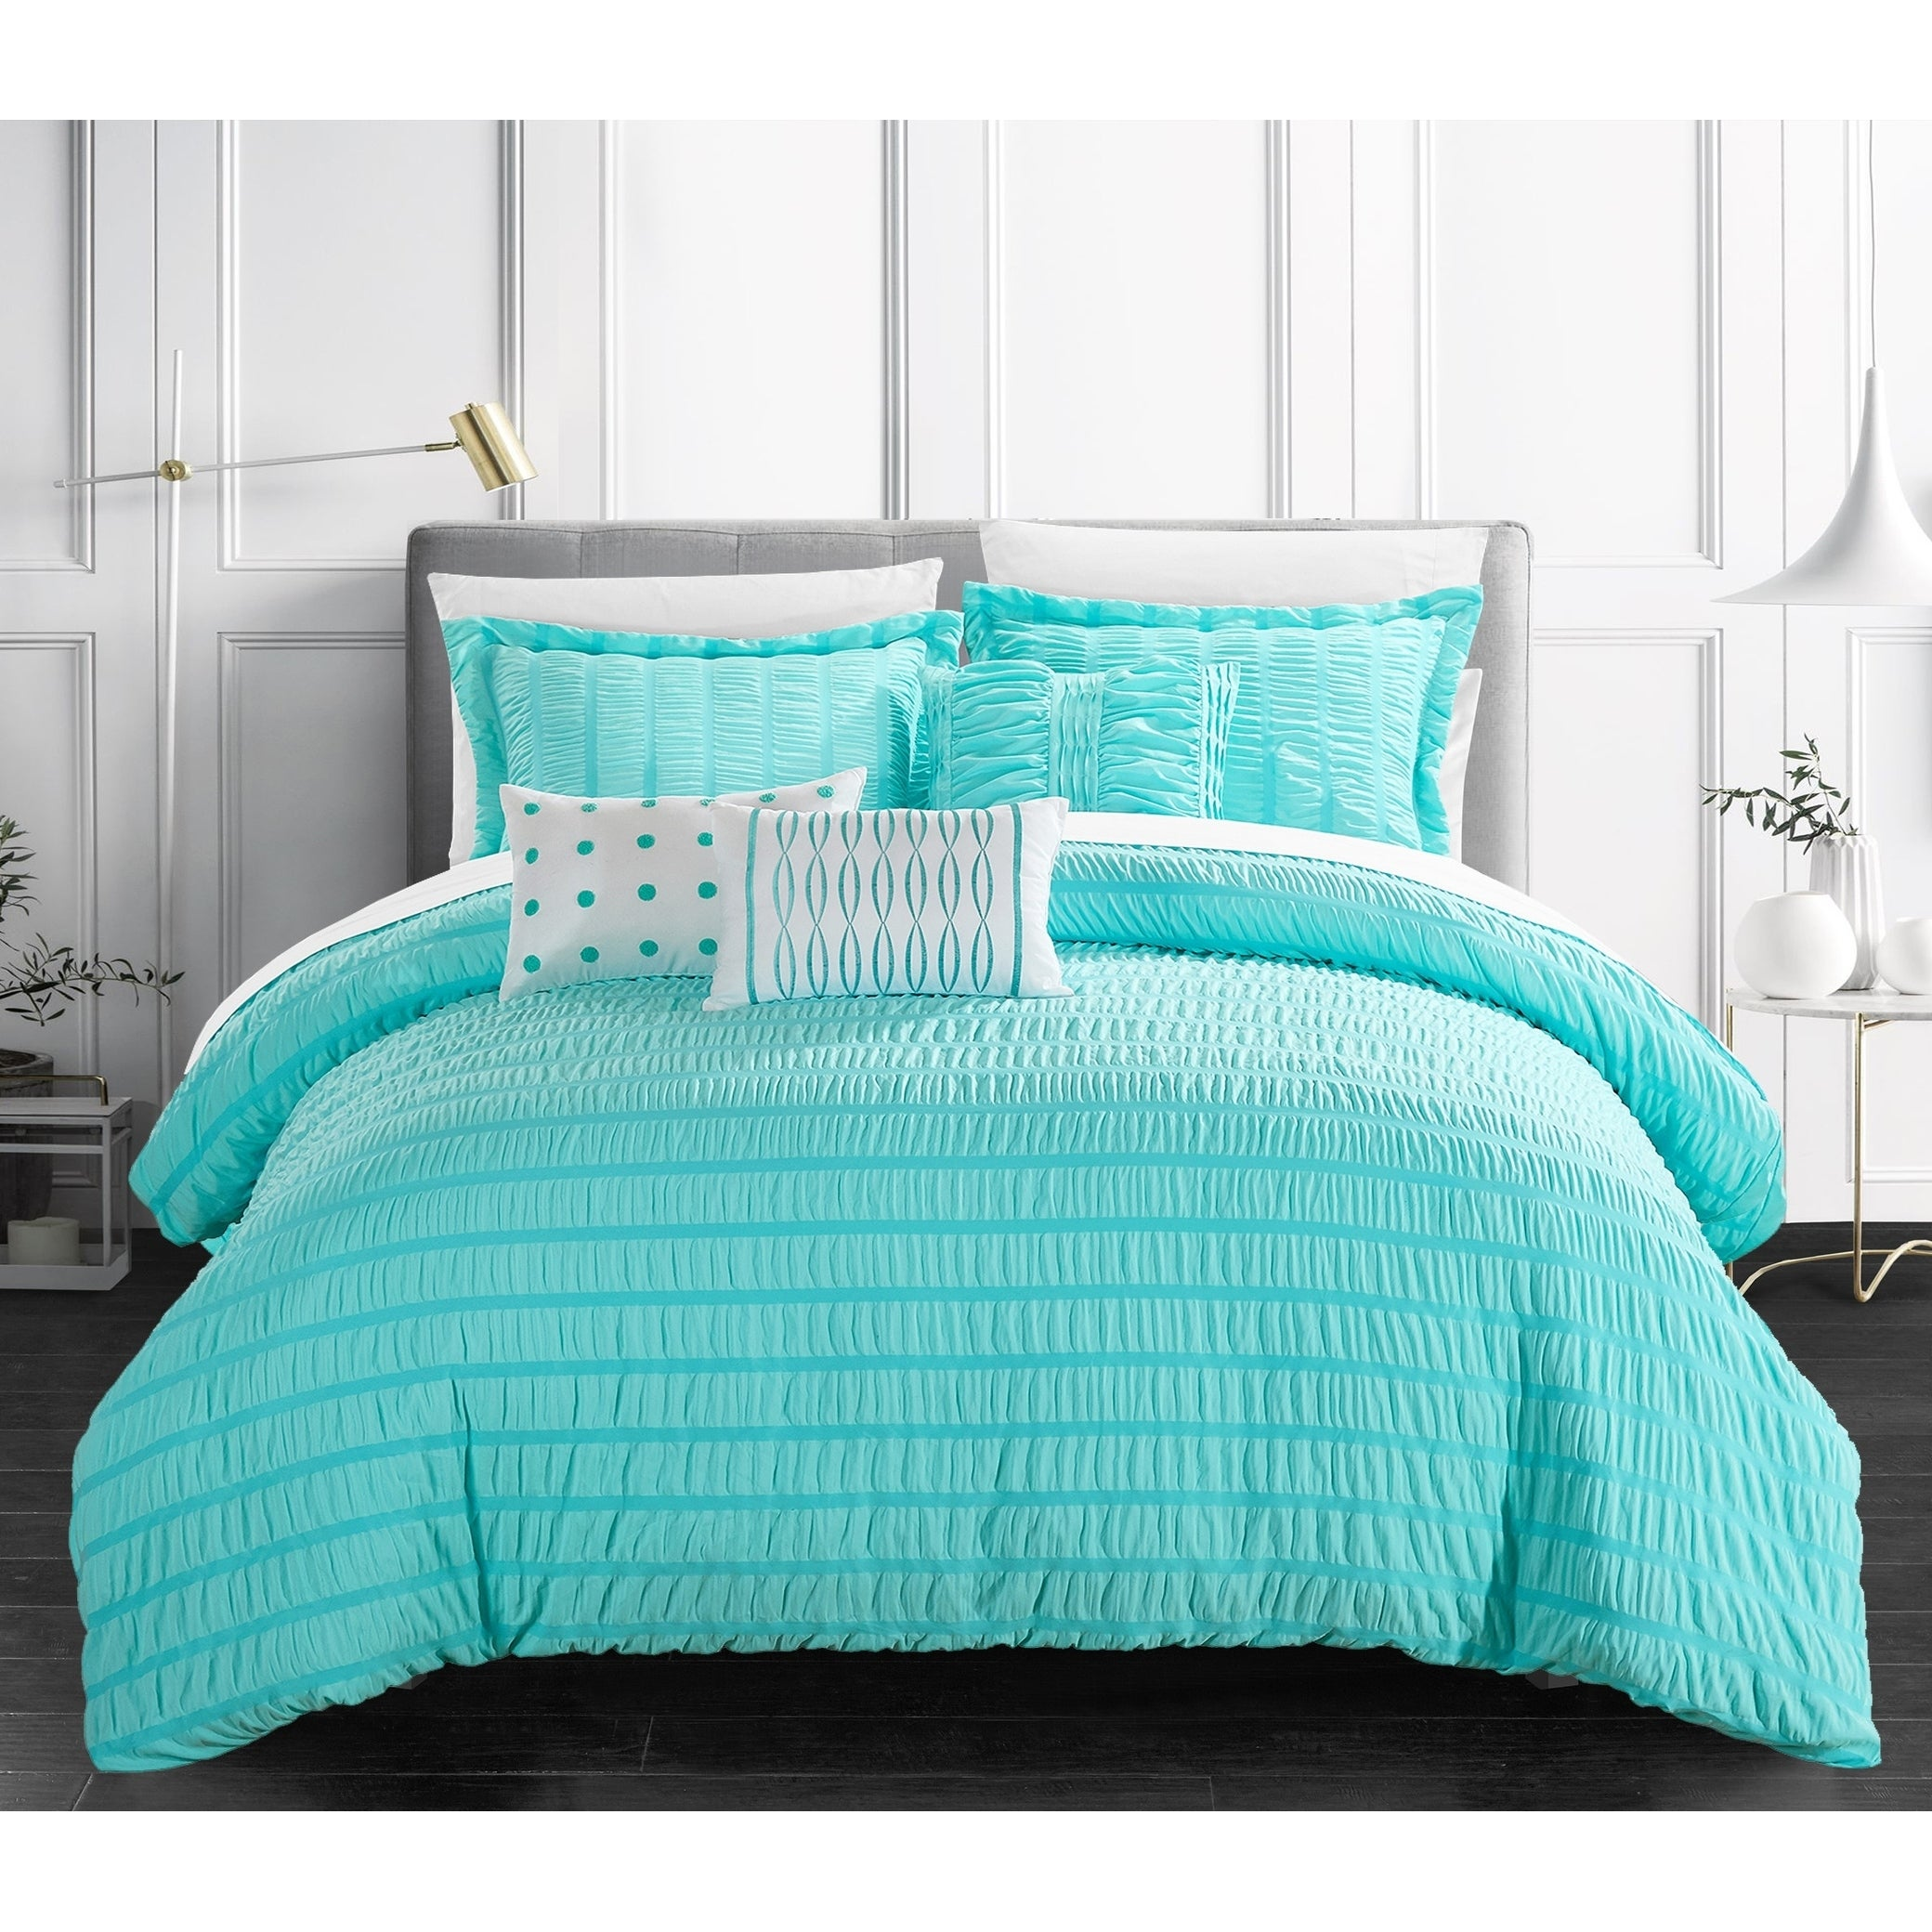 Jayrine 10 Piece Ruched Ruffled Bed